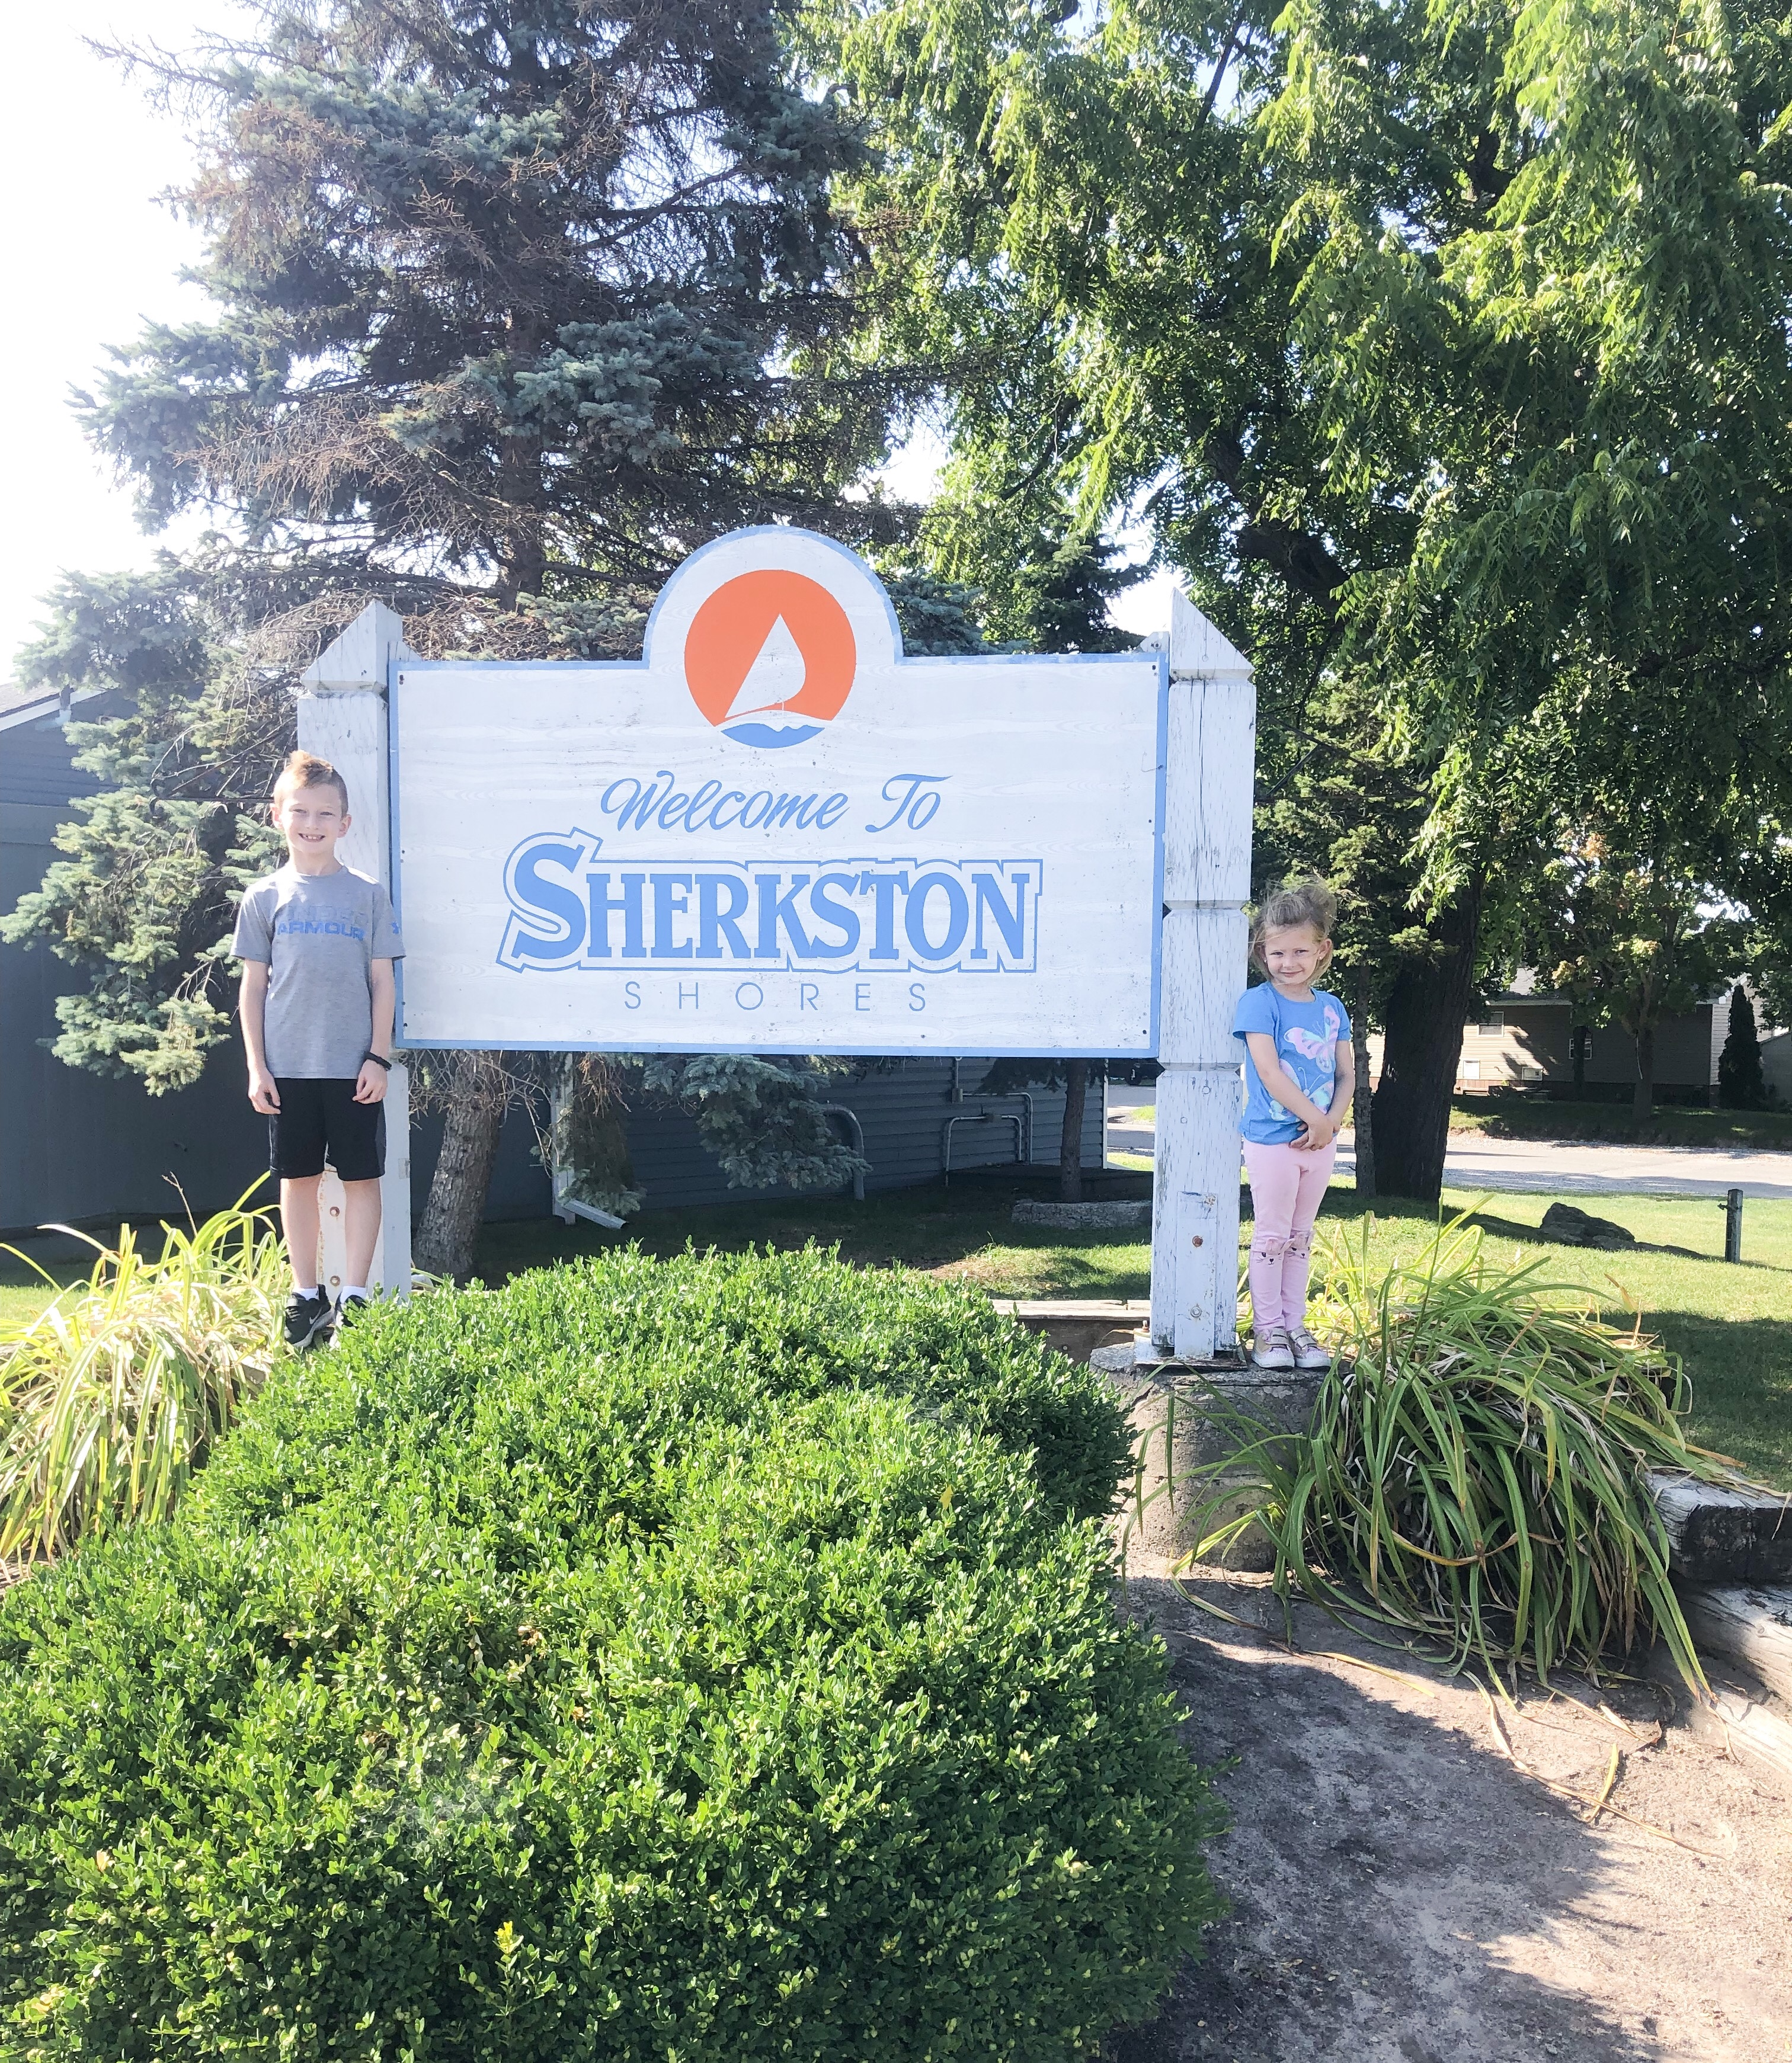 Sherkston Shores Resort getaway on Livin' Life with Style